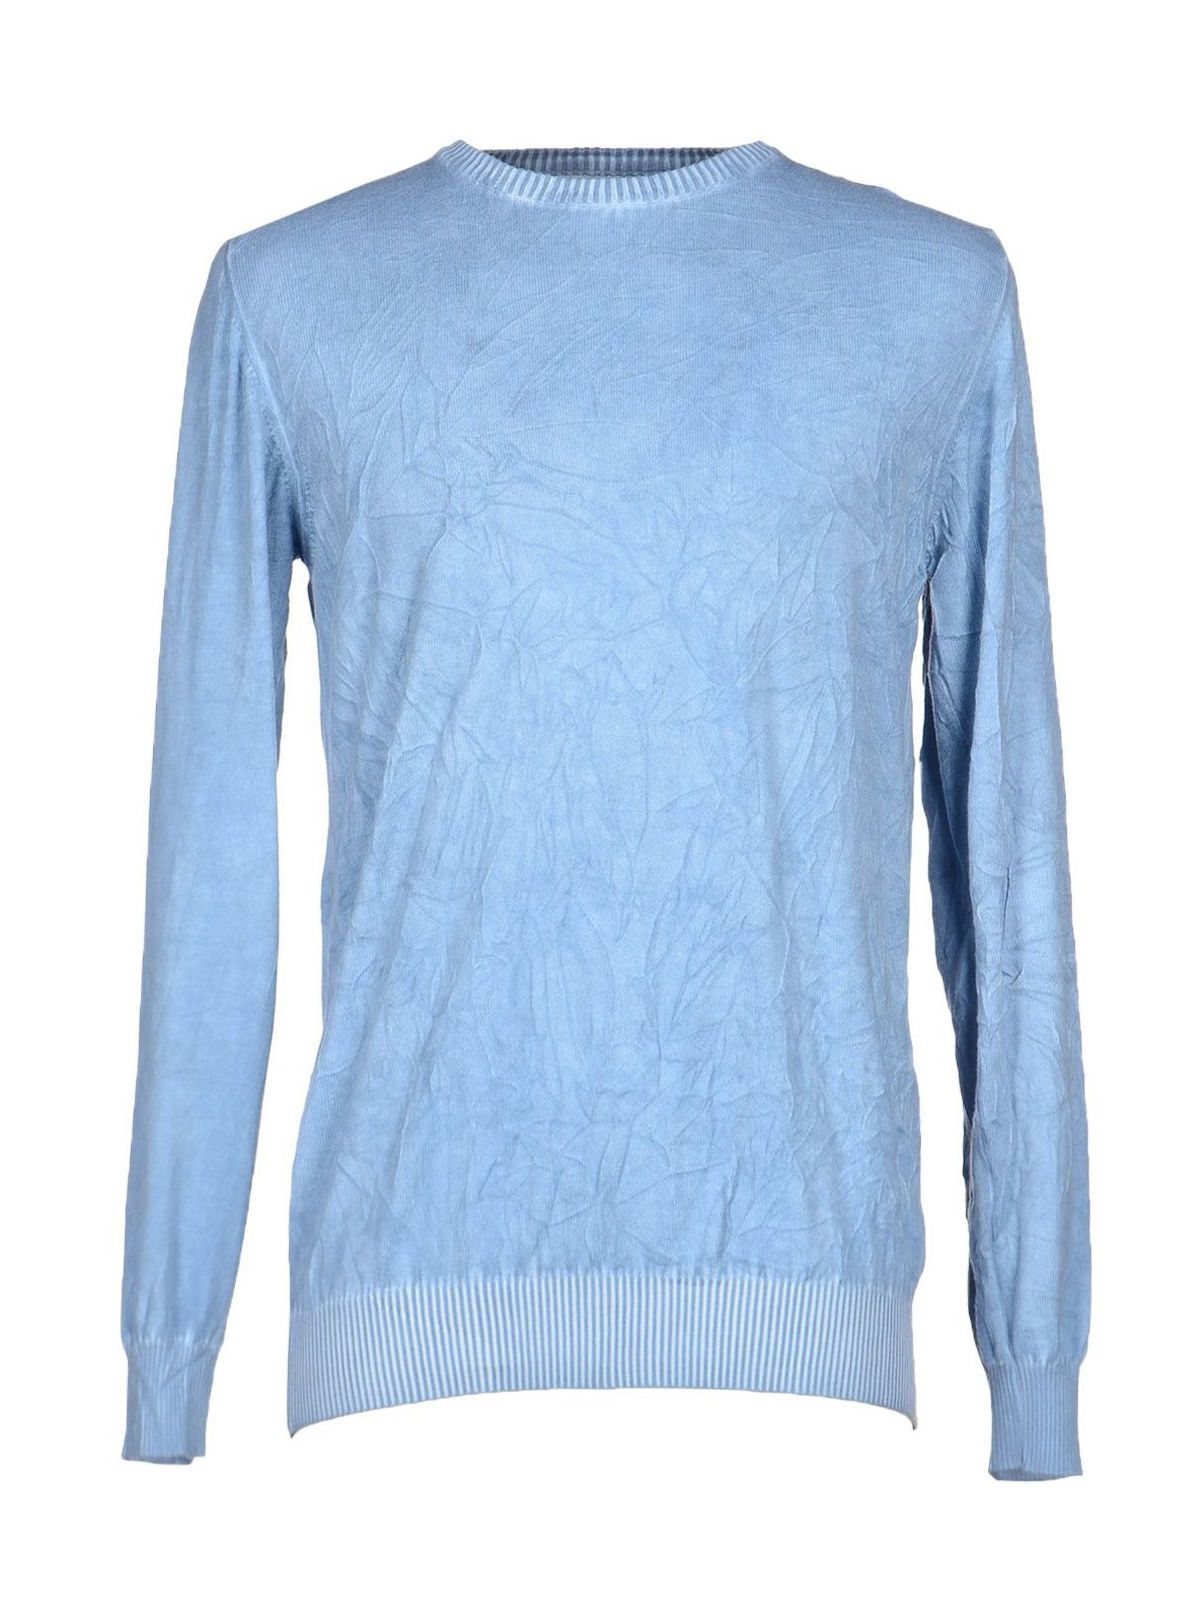 Private Lives Men Cold Pigment Dyed Blue Cotton Sweater Wrinkled ...